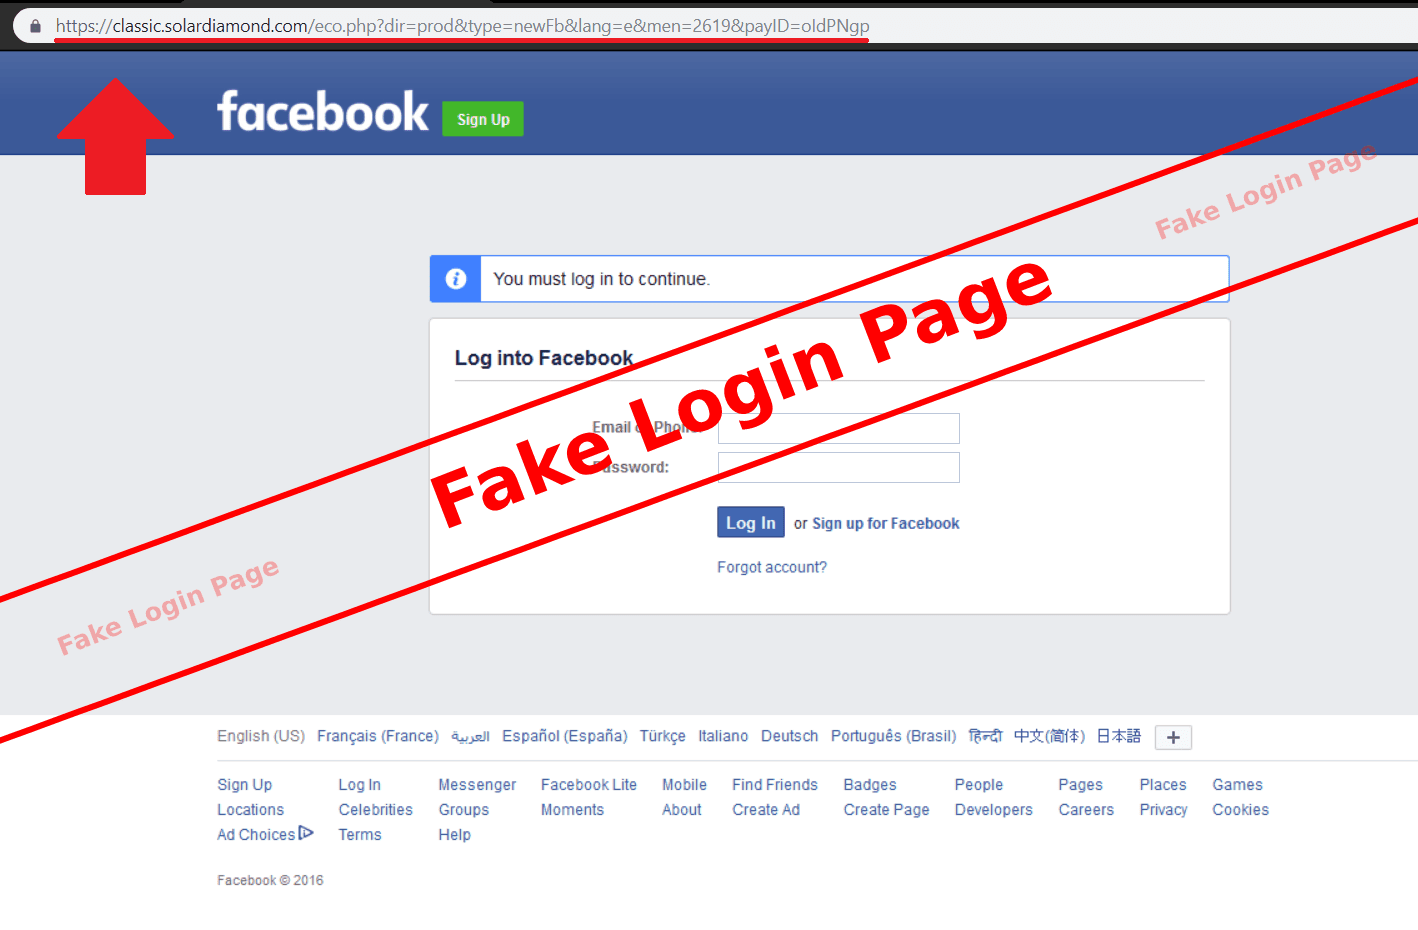 Beware Facebook users! Hackers could use Fake login pages to trick you to steal your login information